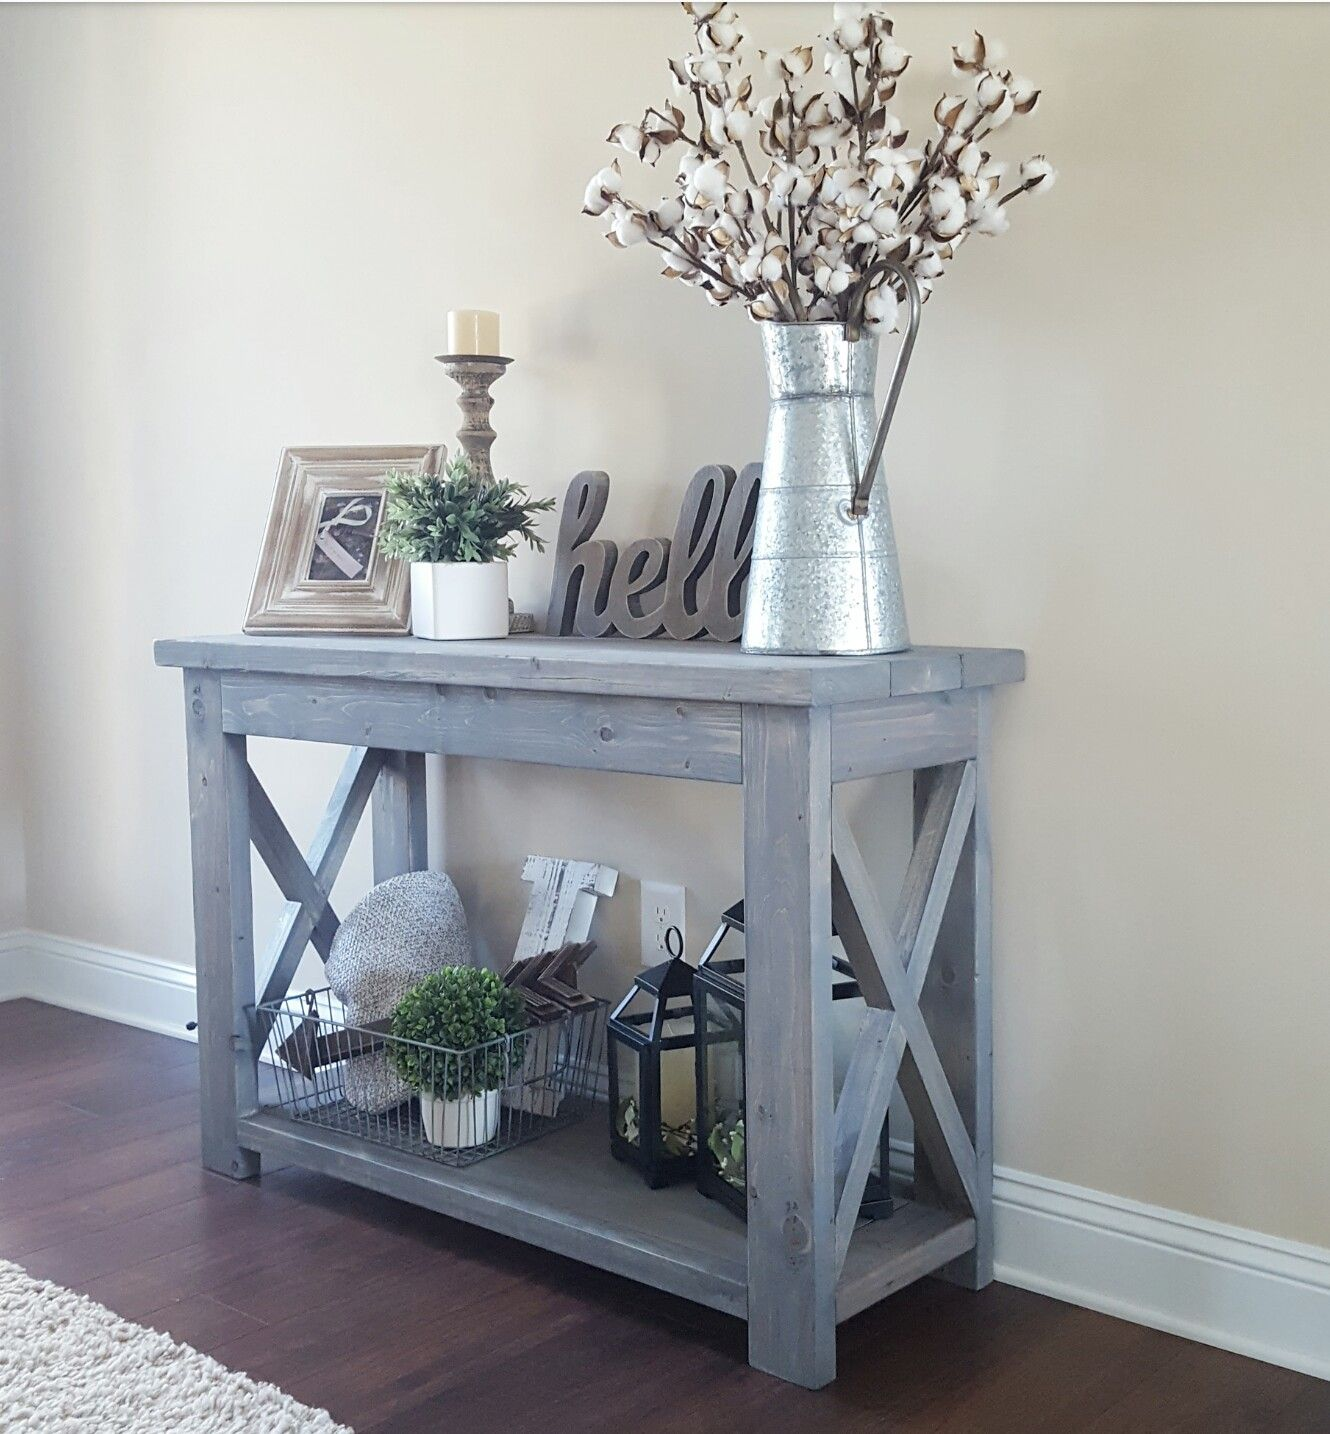 Modified ana whites rustic x console table and used minwax classic